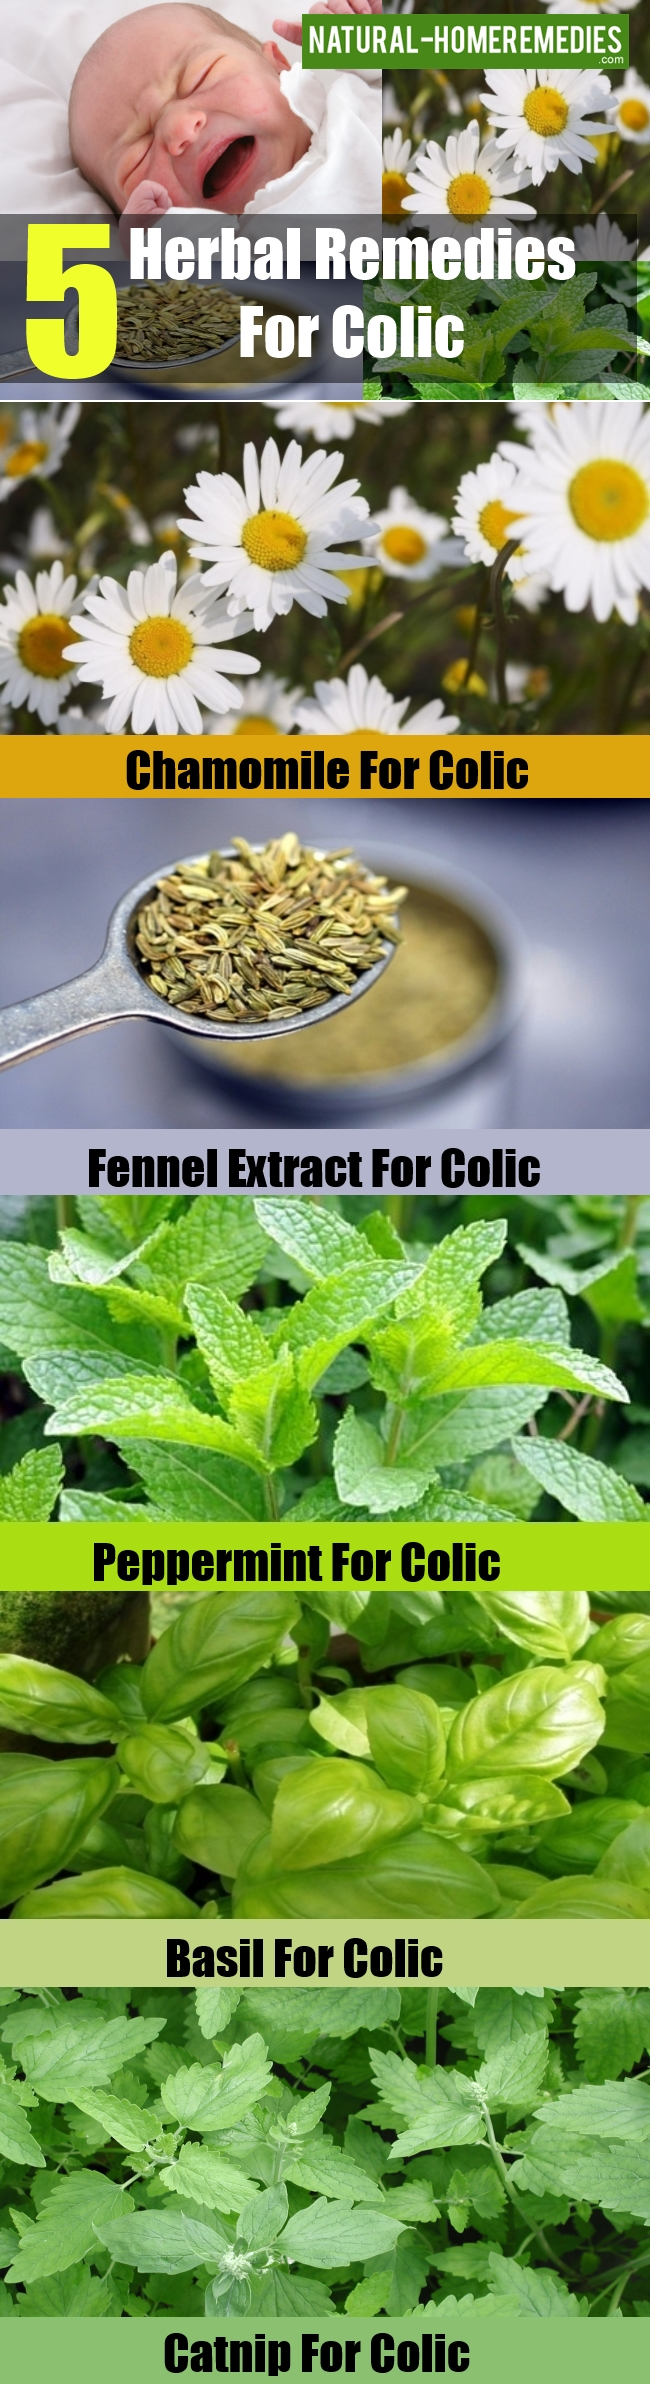 Herbal Remedies For Colic